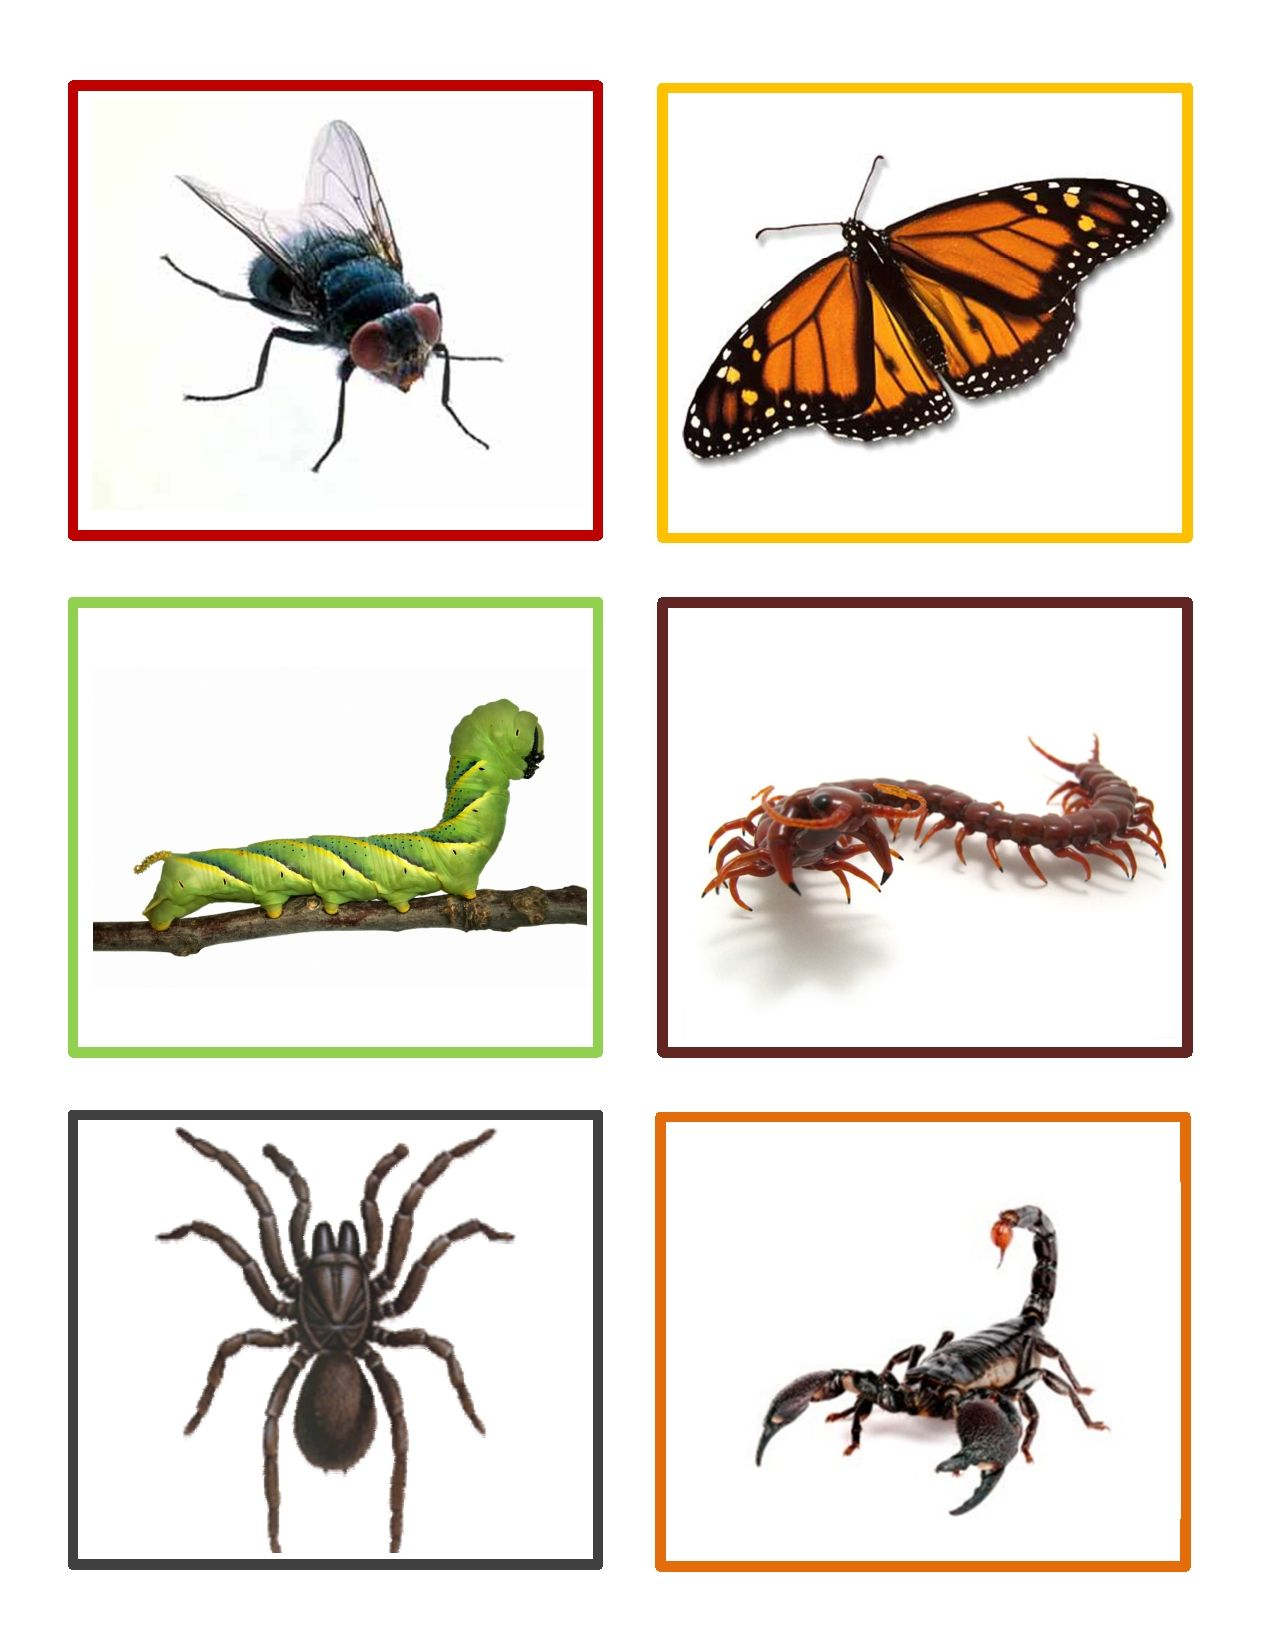 Insect Memory Game Is A Fun Activity For Preschoolers To